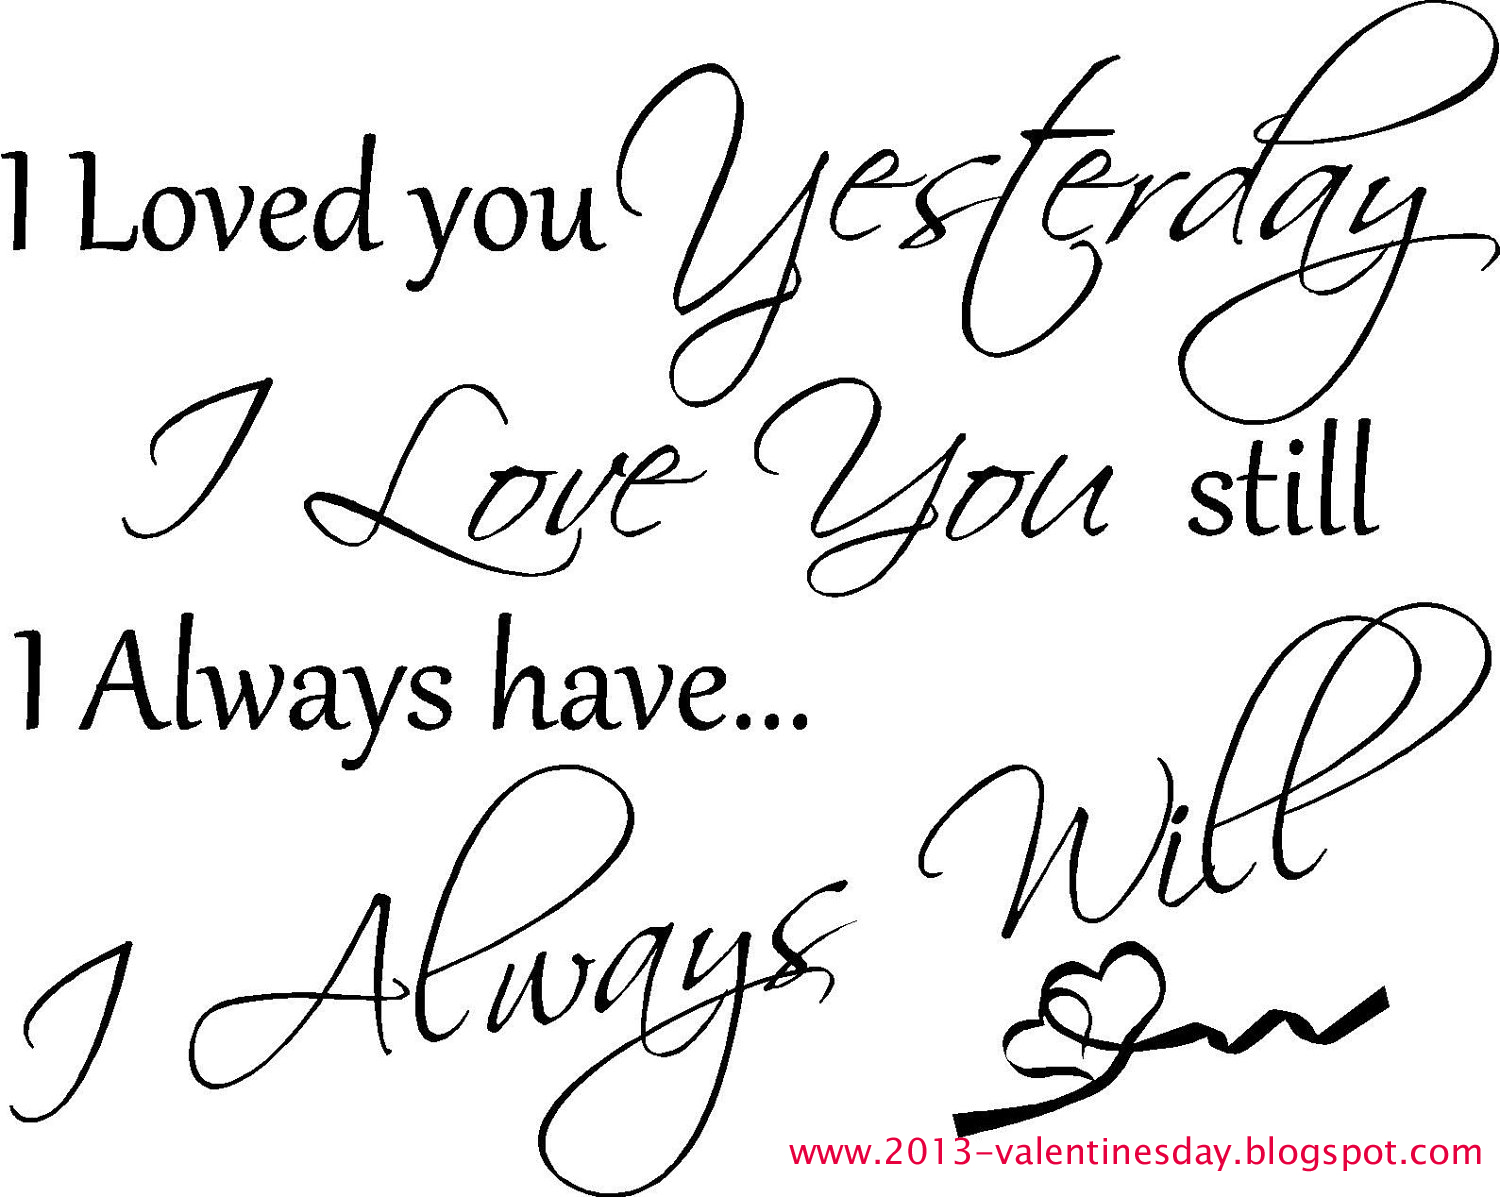 Love Images Image HD Wallpaper And Background Photos